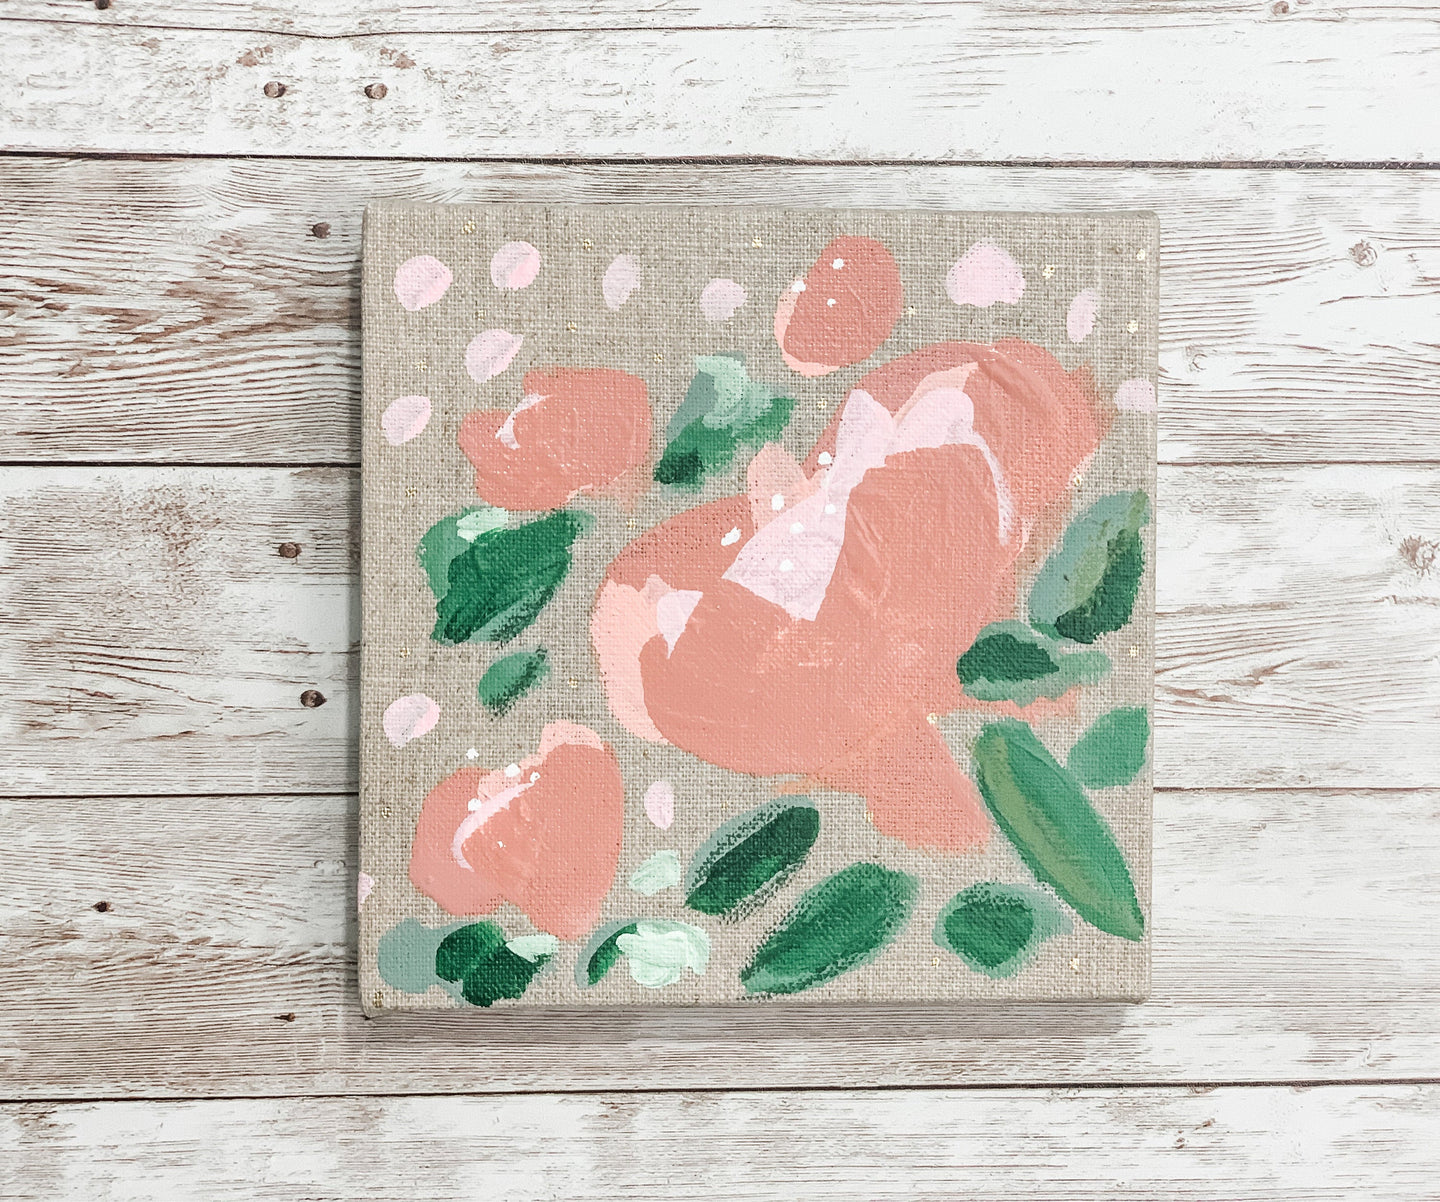 Blush Floral (on raw linen canvas)